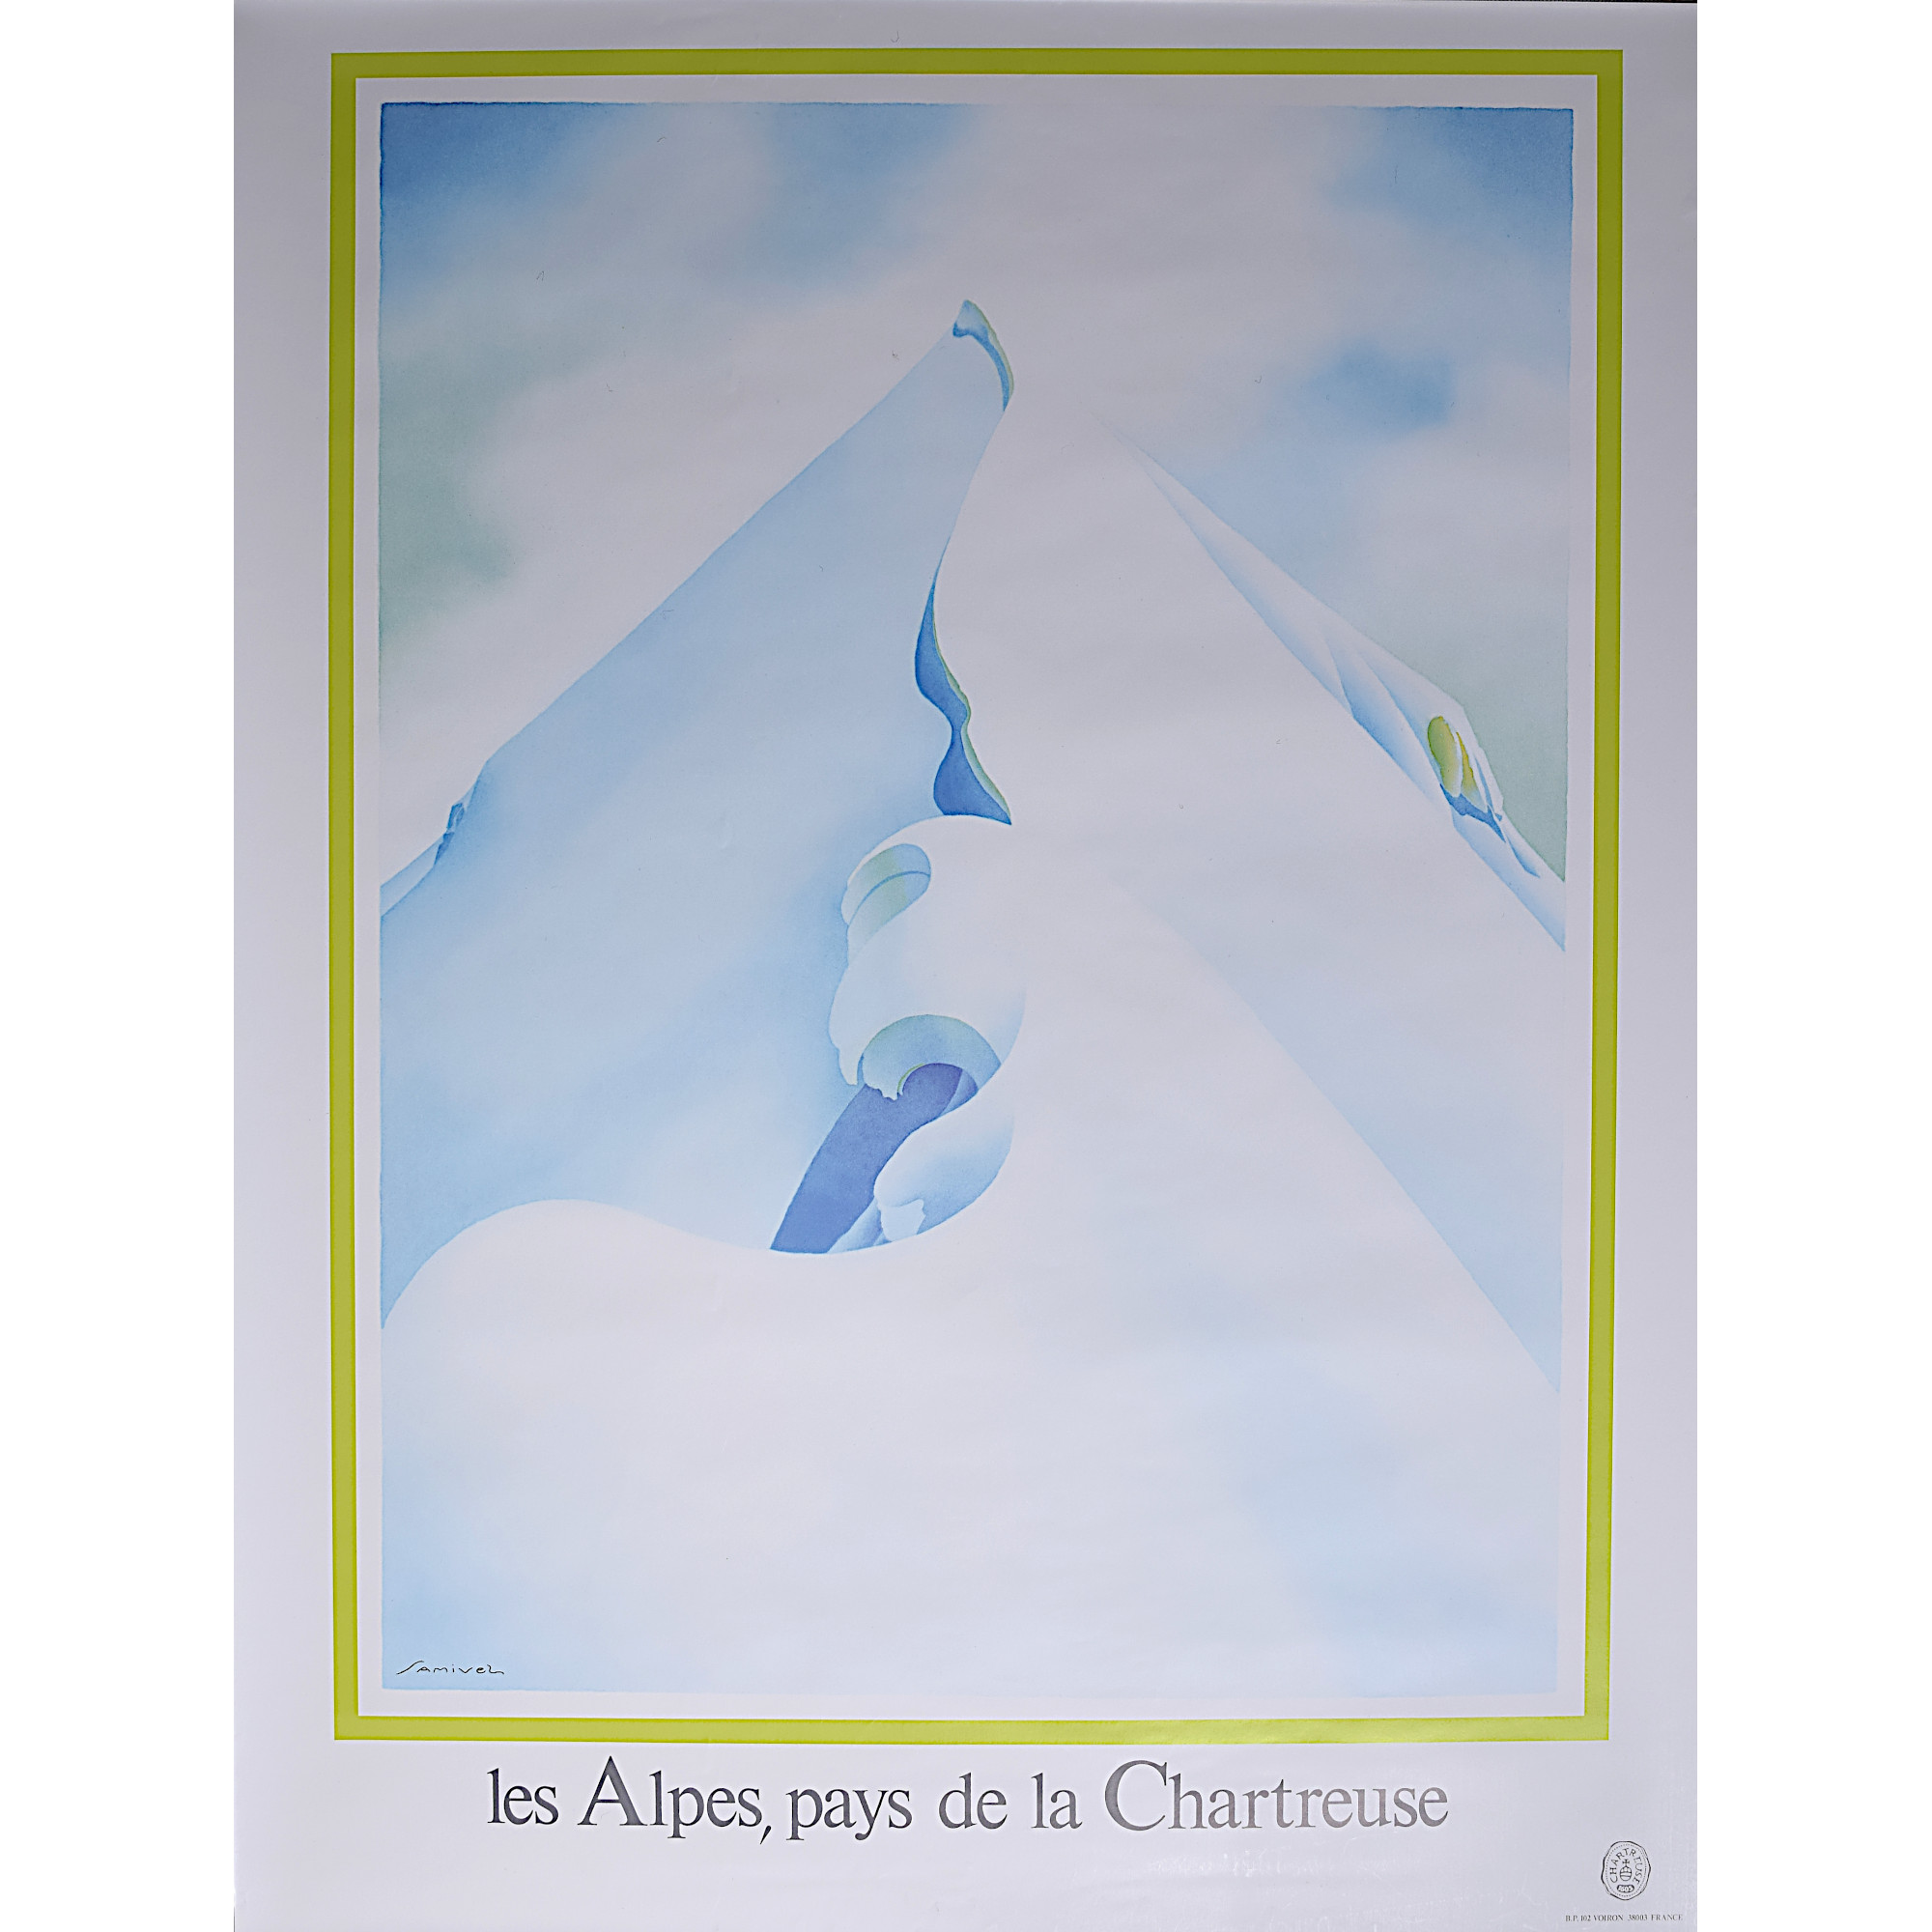 Samivel Chartreuse Alps original vintage poster for sale